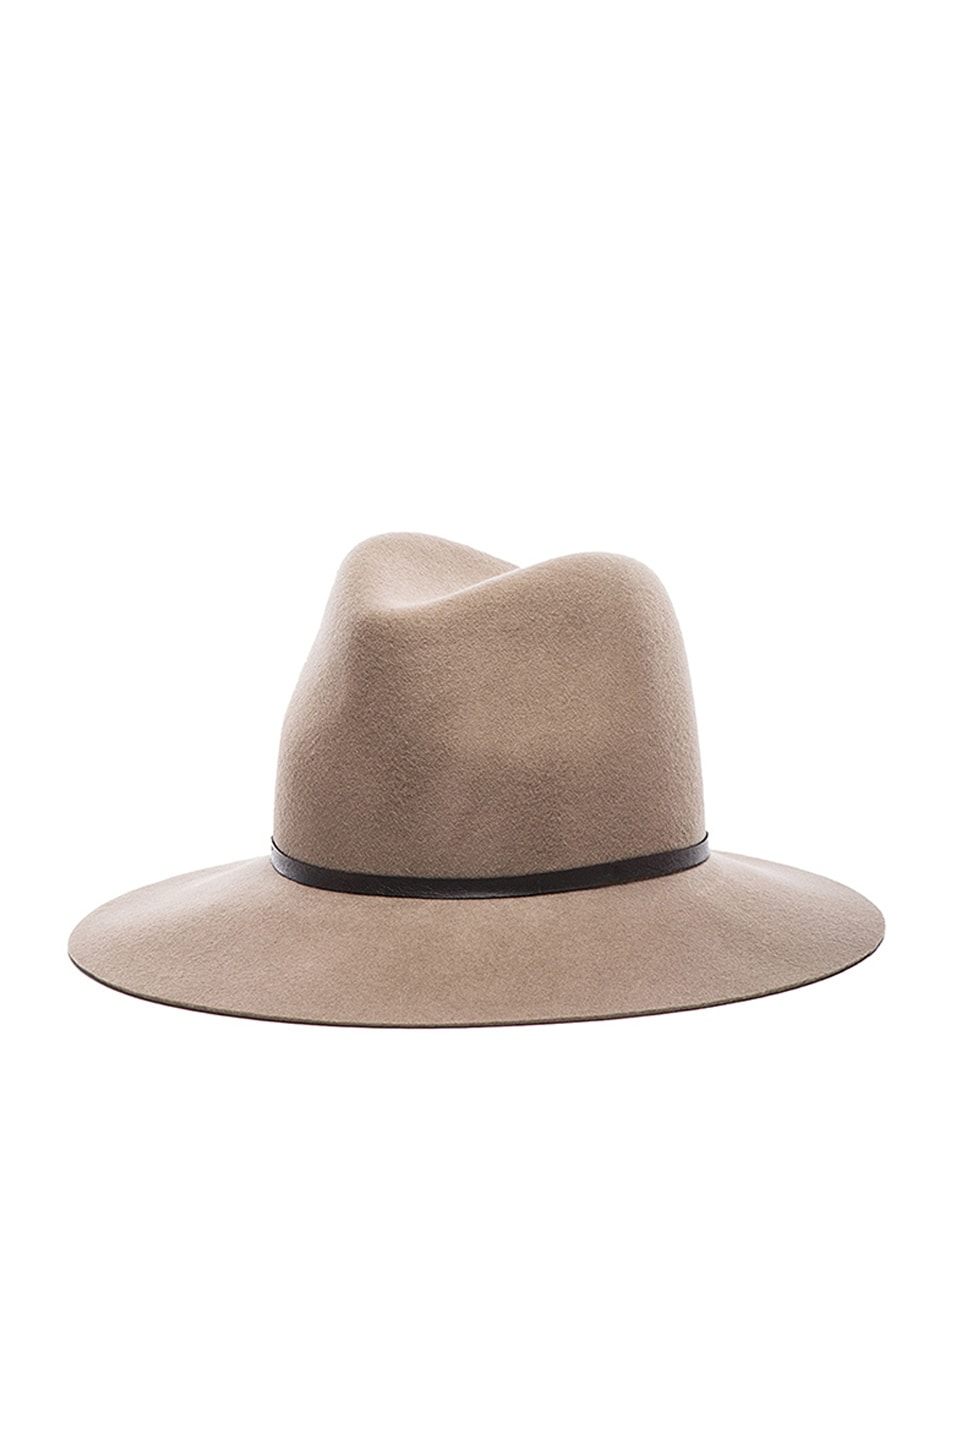 Image 3 of Janessa Leone Lola Wool Felt Hat in Camel